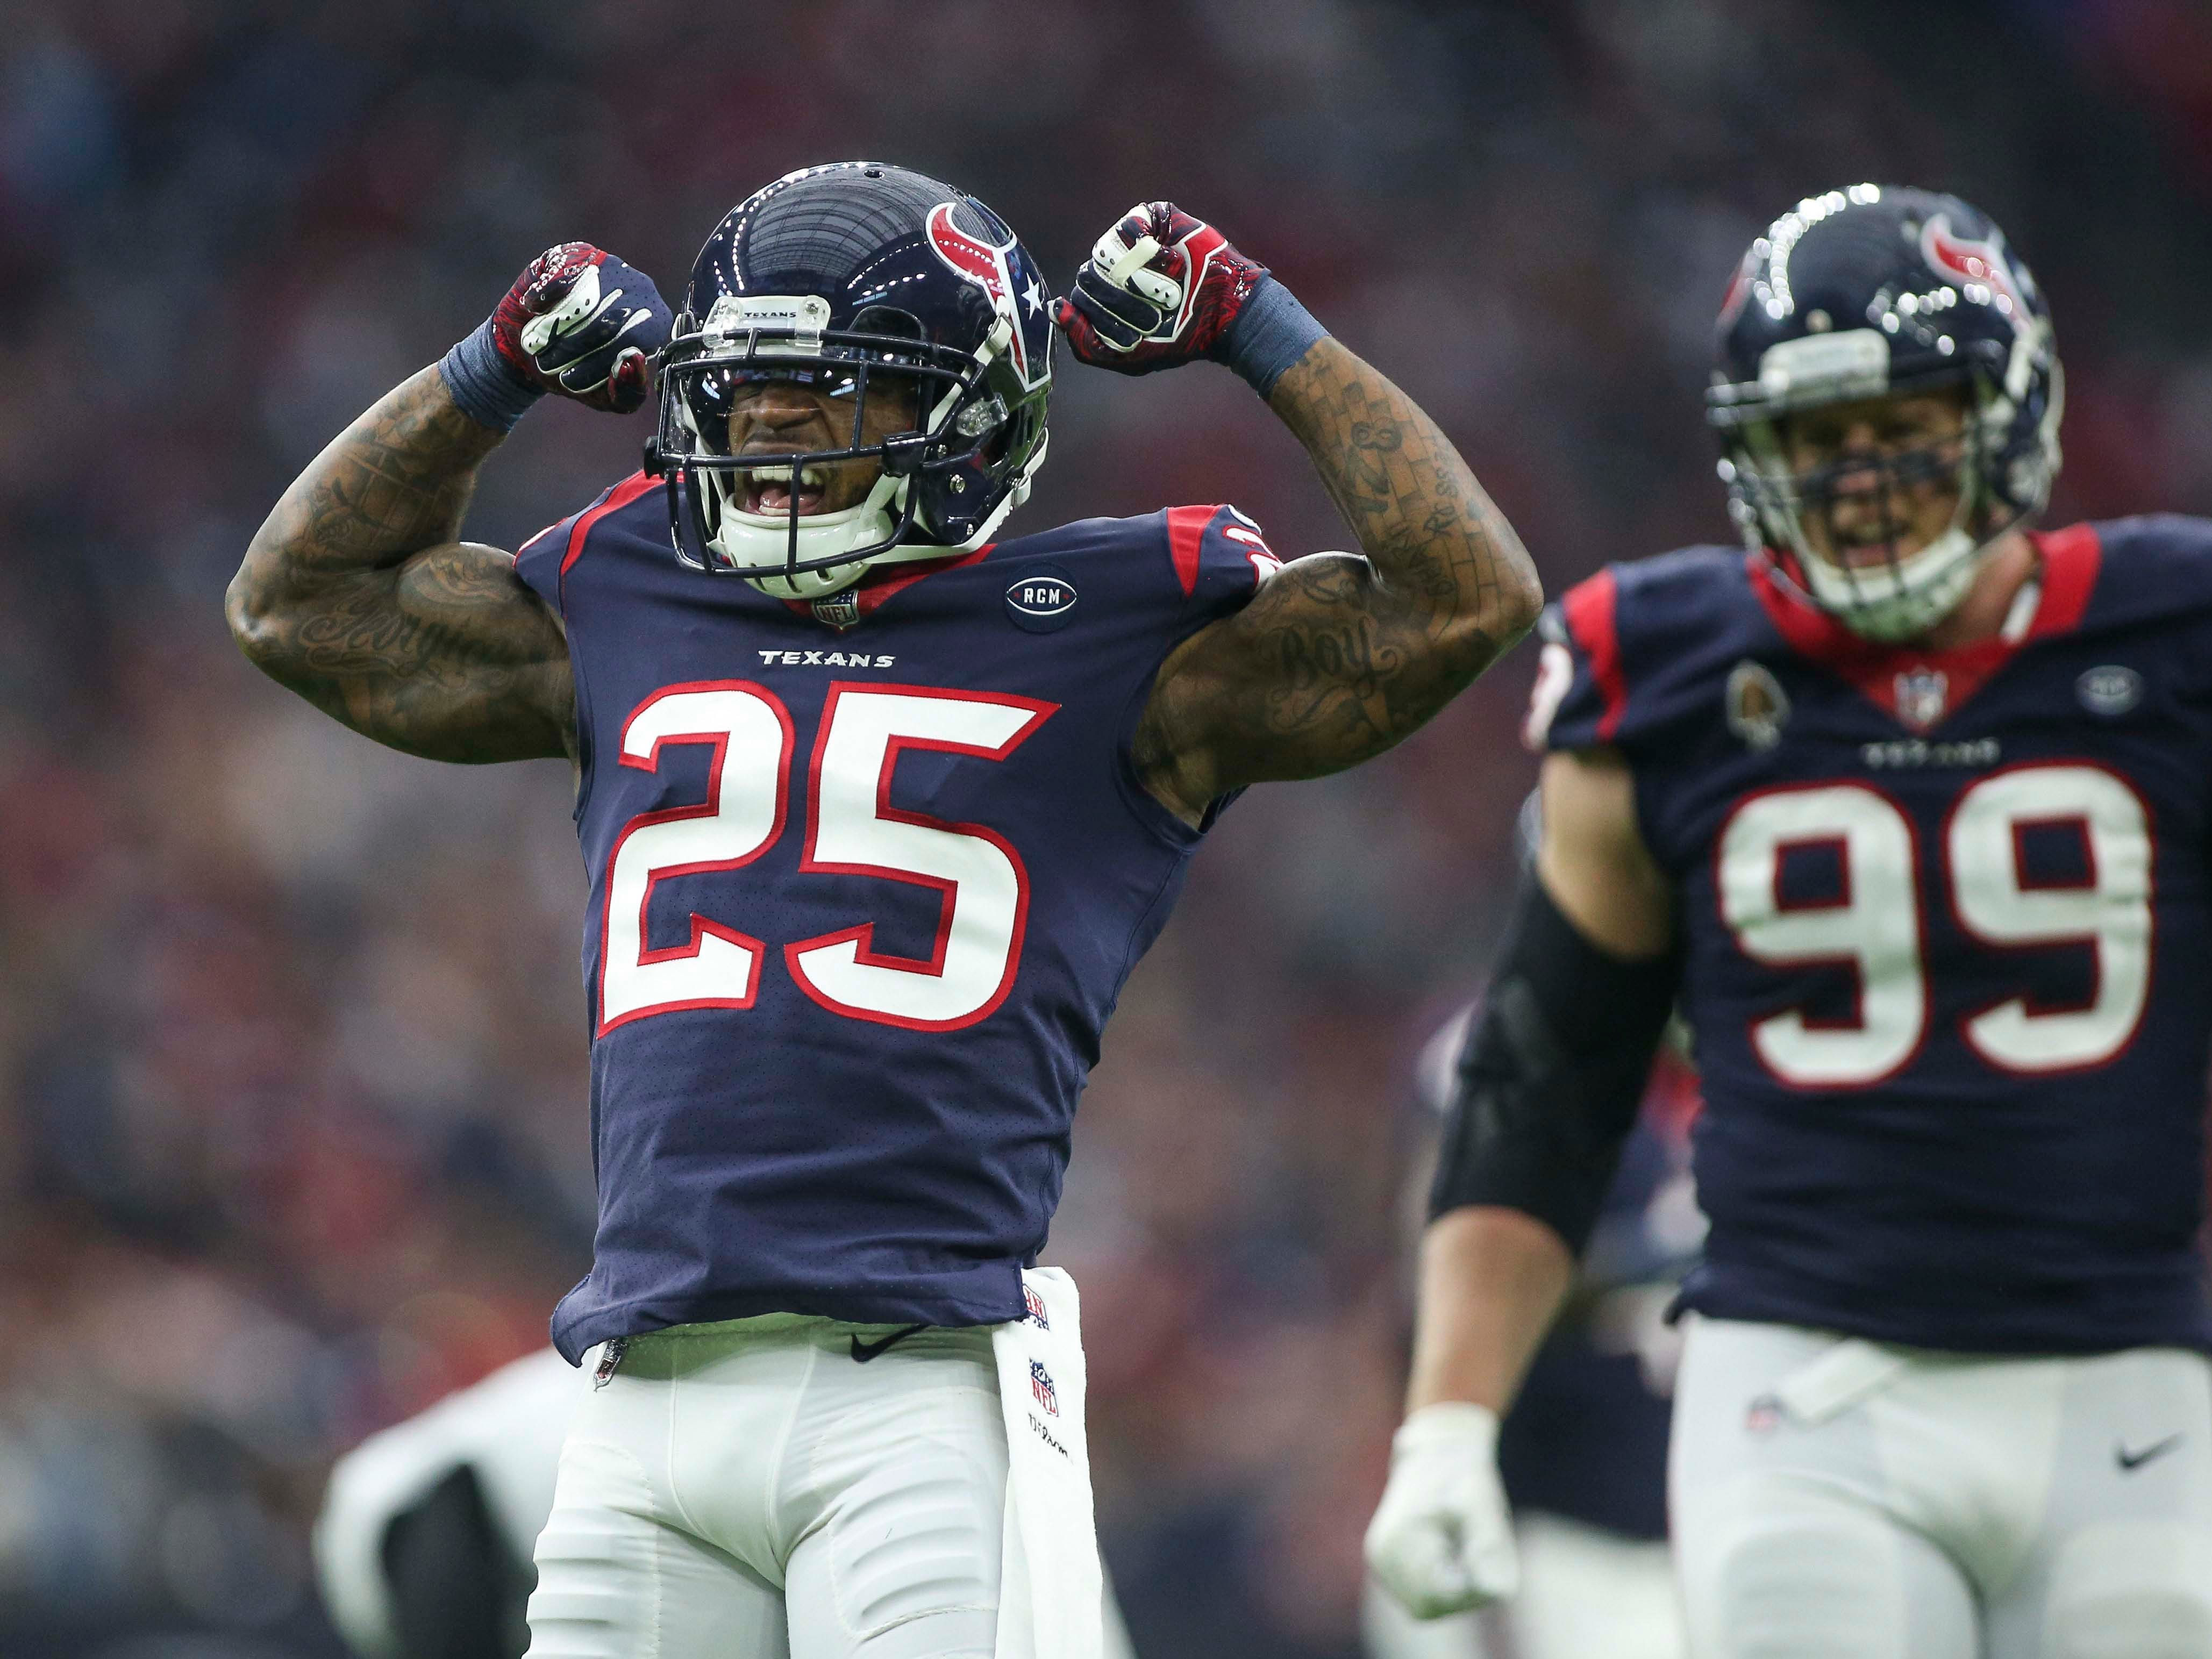 NR: Kareem Jackson, CB, Texans: Agreed to deal with Broncos